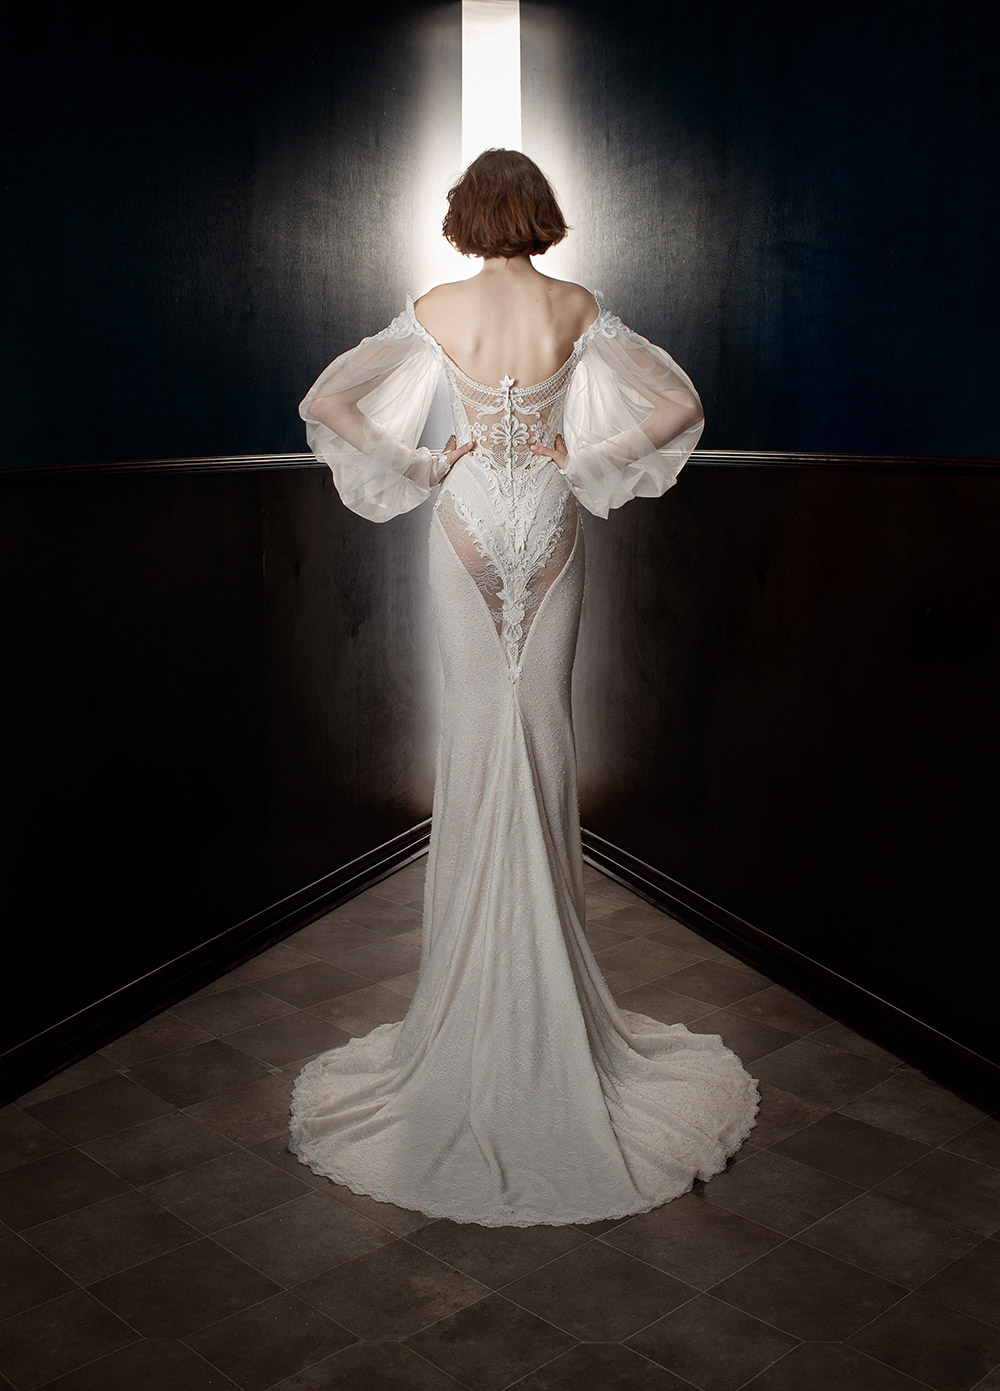 Thelma - Galia Lahav Spring 2018 Bridal Collection. www.theweddingnotebook.com